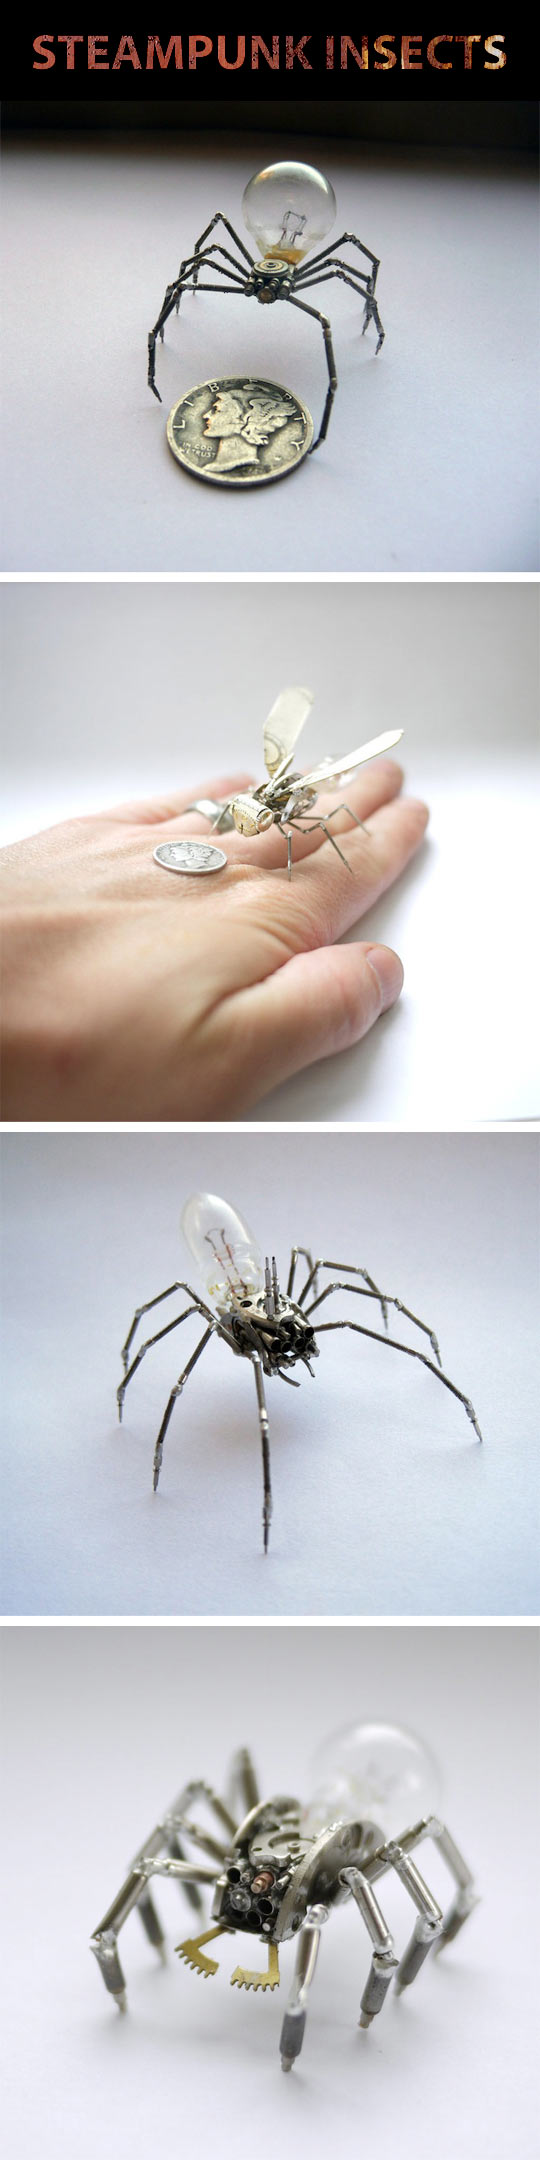 cool-insect-robot-steampunk-spider-coin